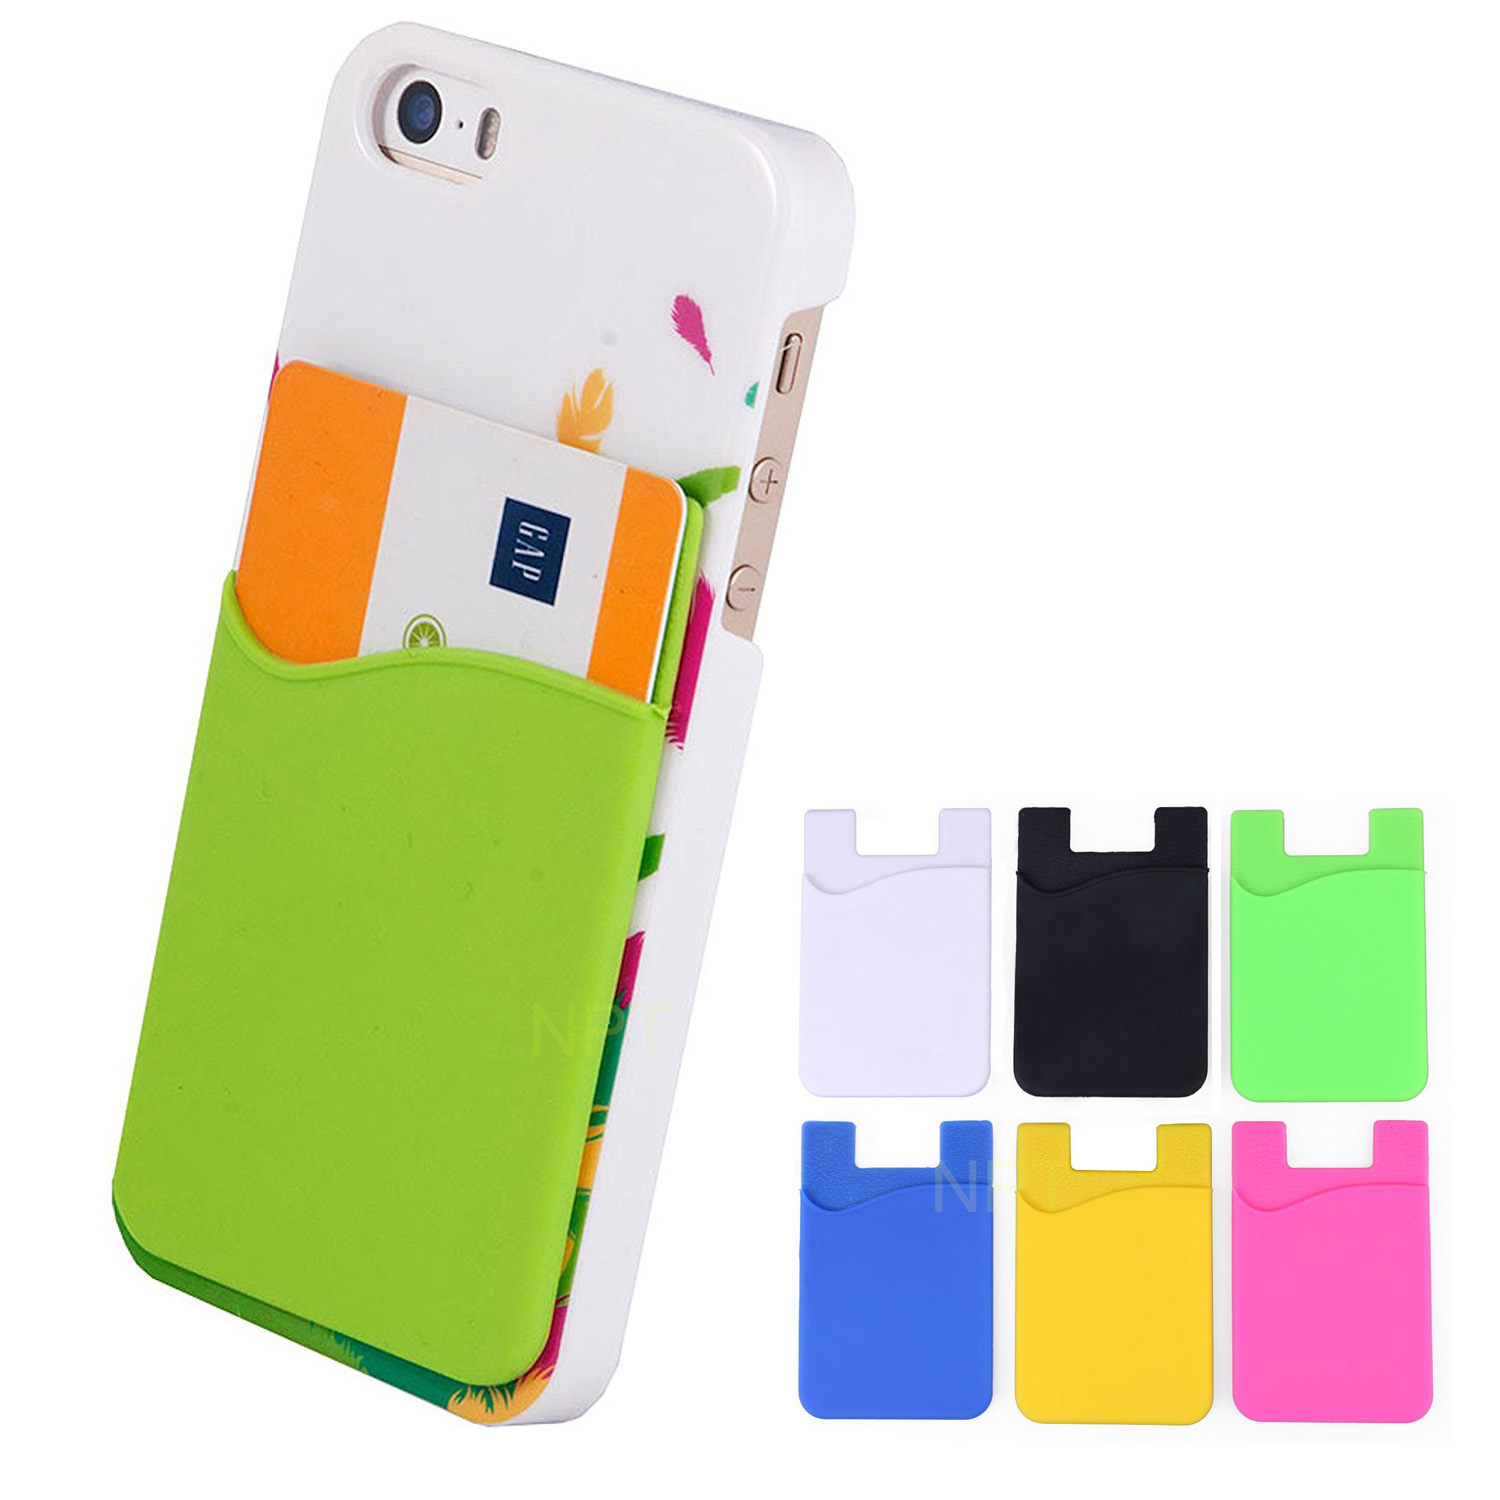 Silicone Mobile Pocket Smartphone Wallet